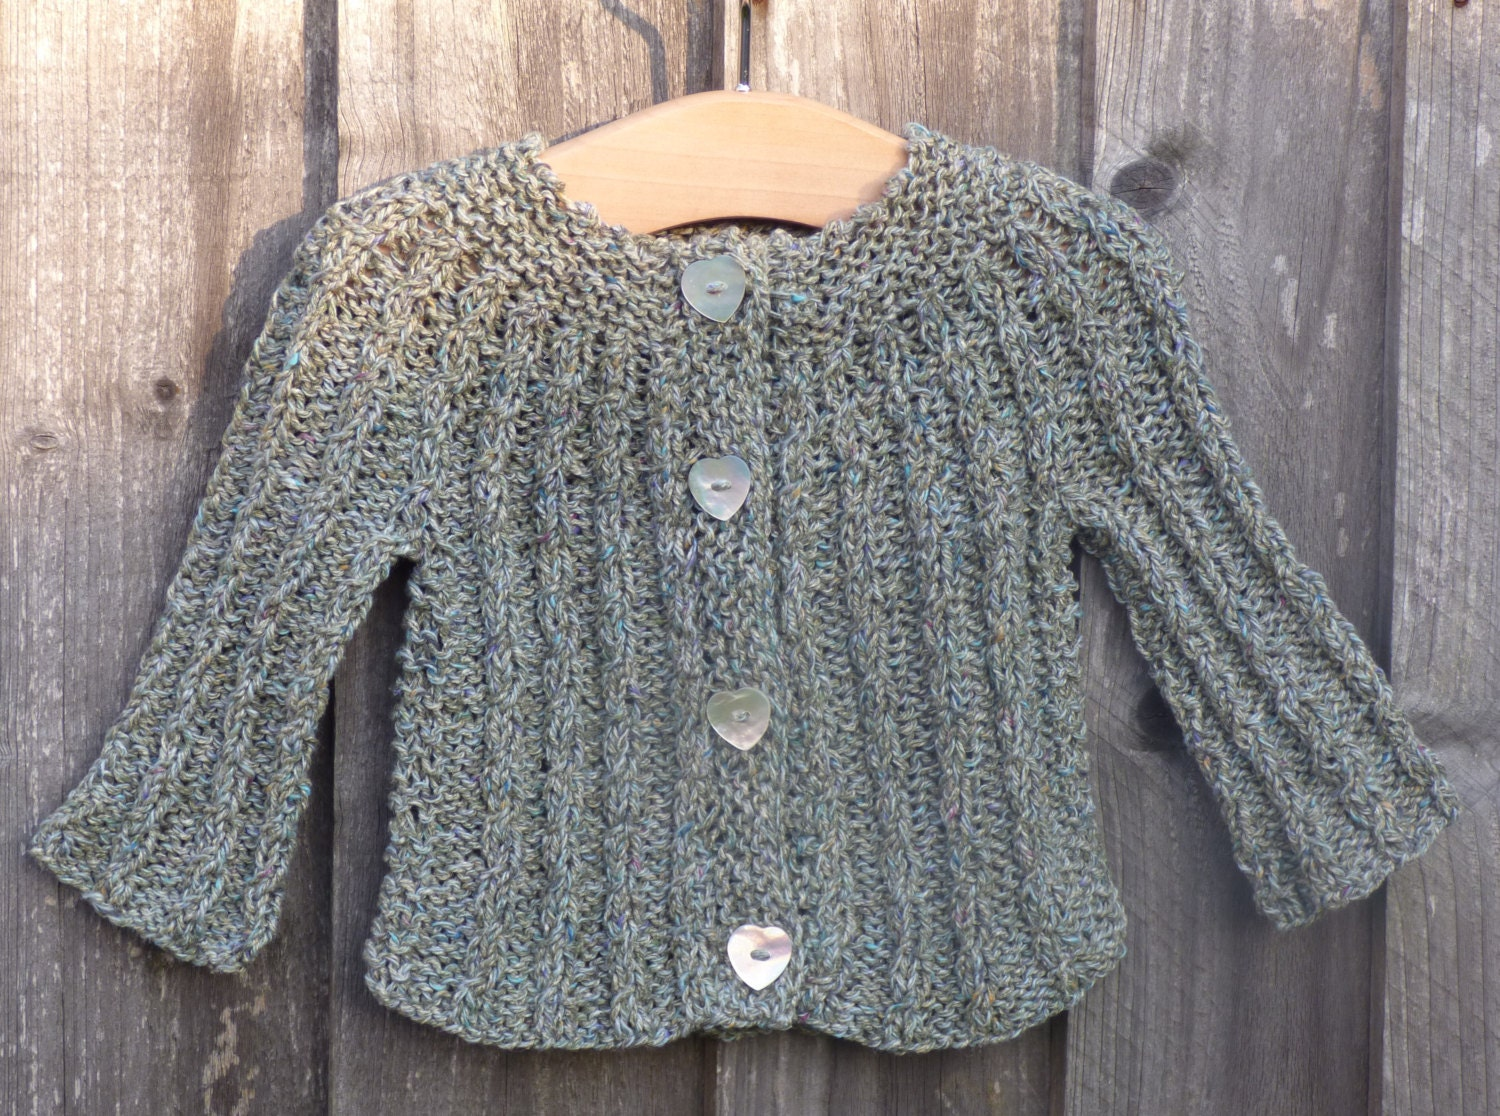 Magnificent Top Down Knitted Sweater Patterns Vignette - Sewing ...